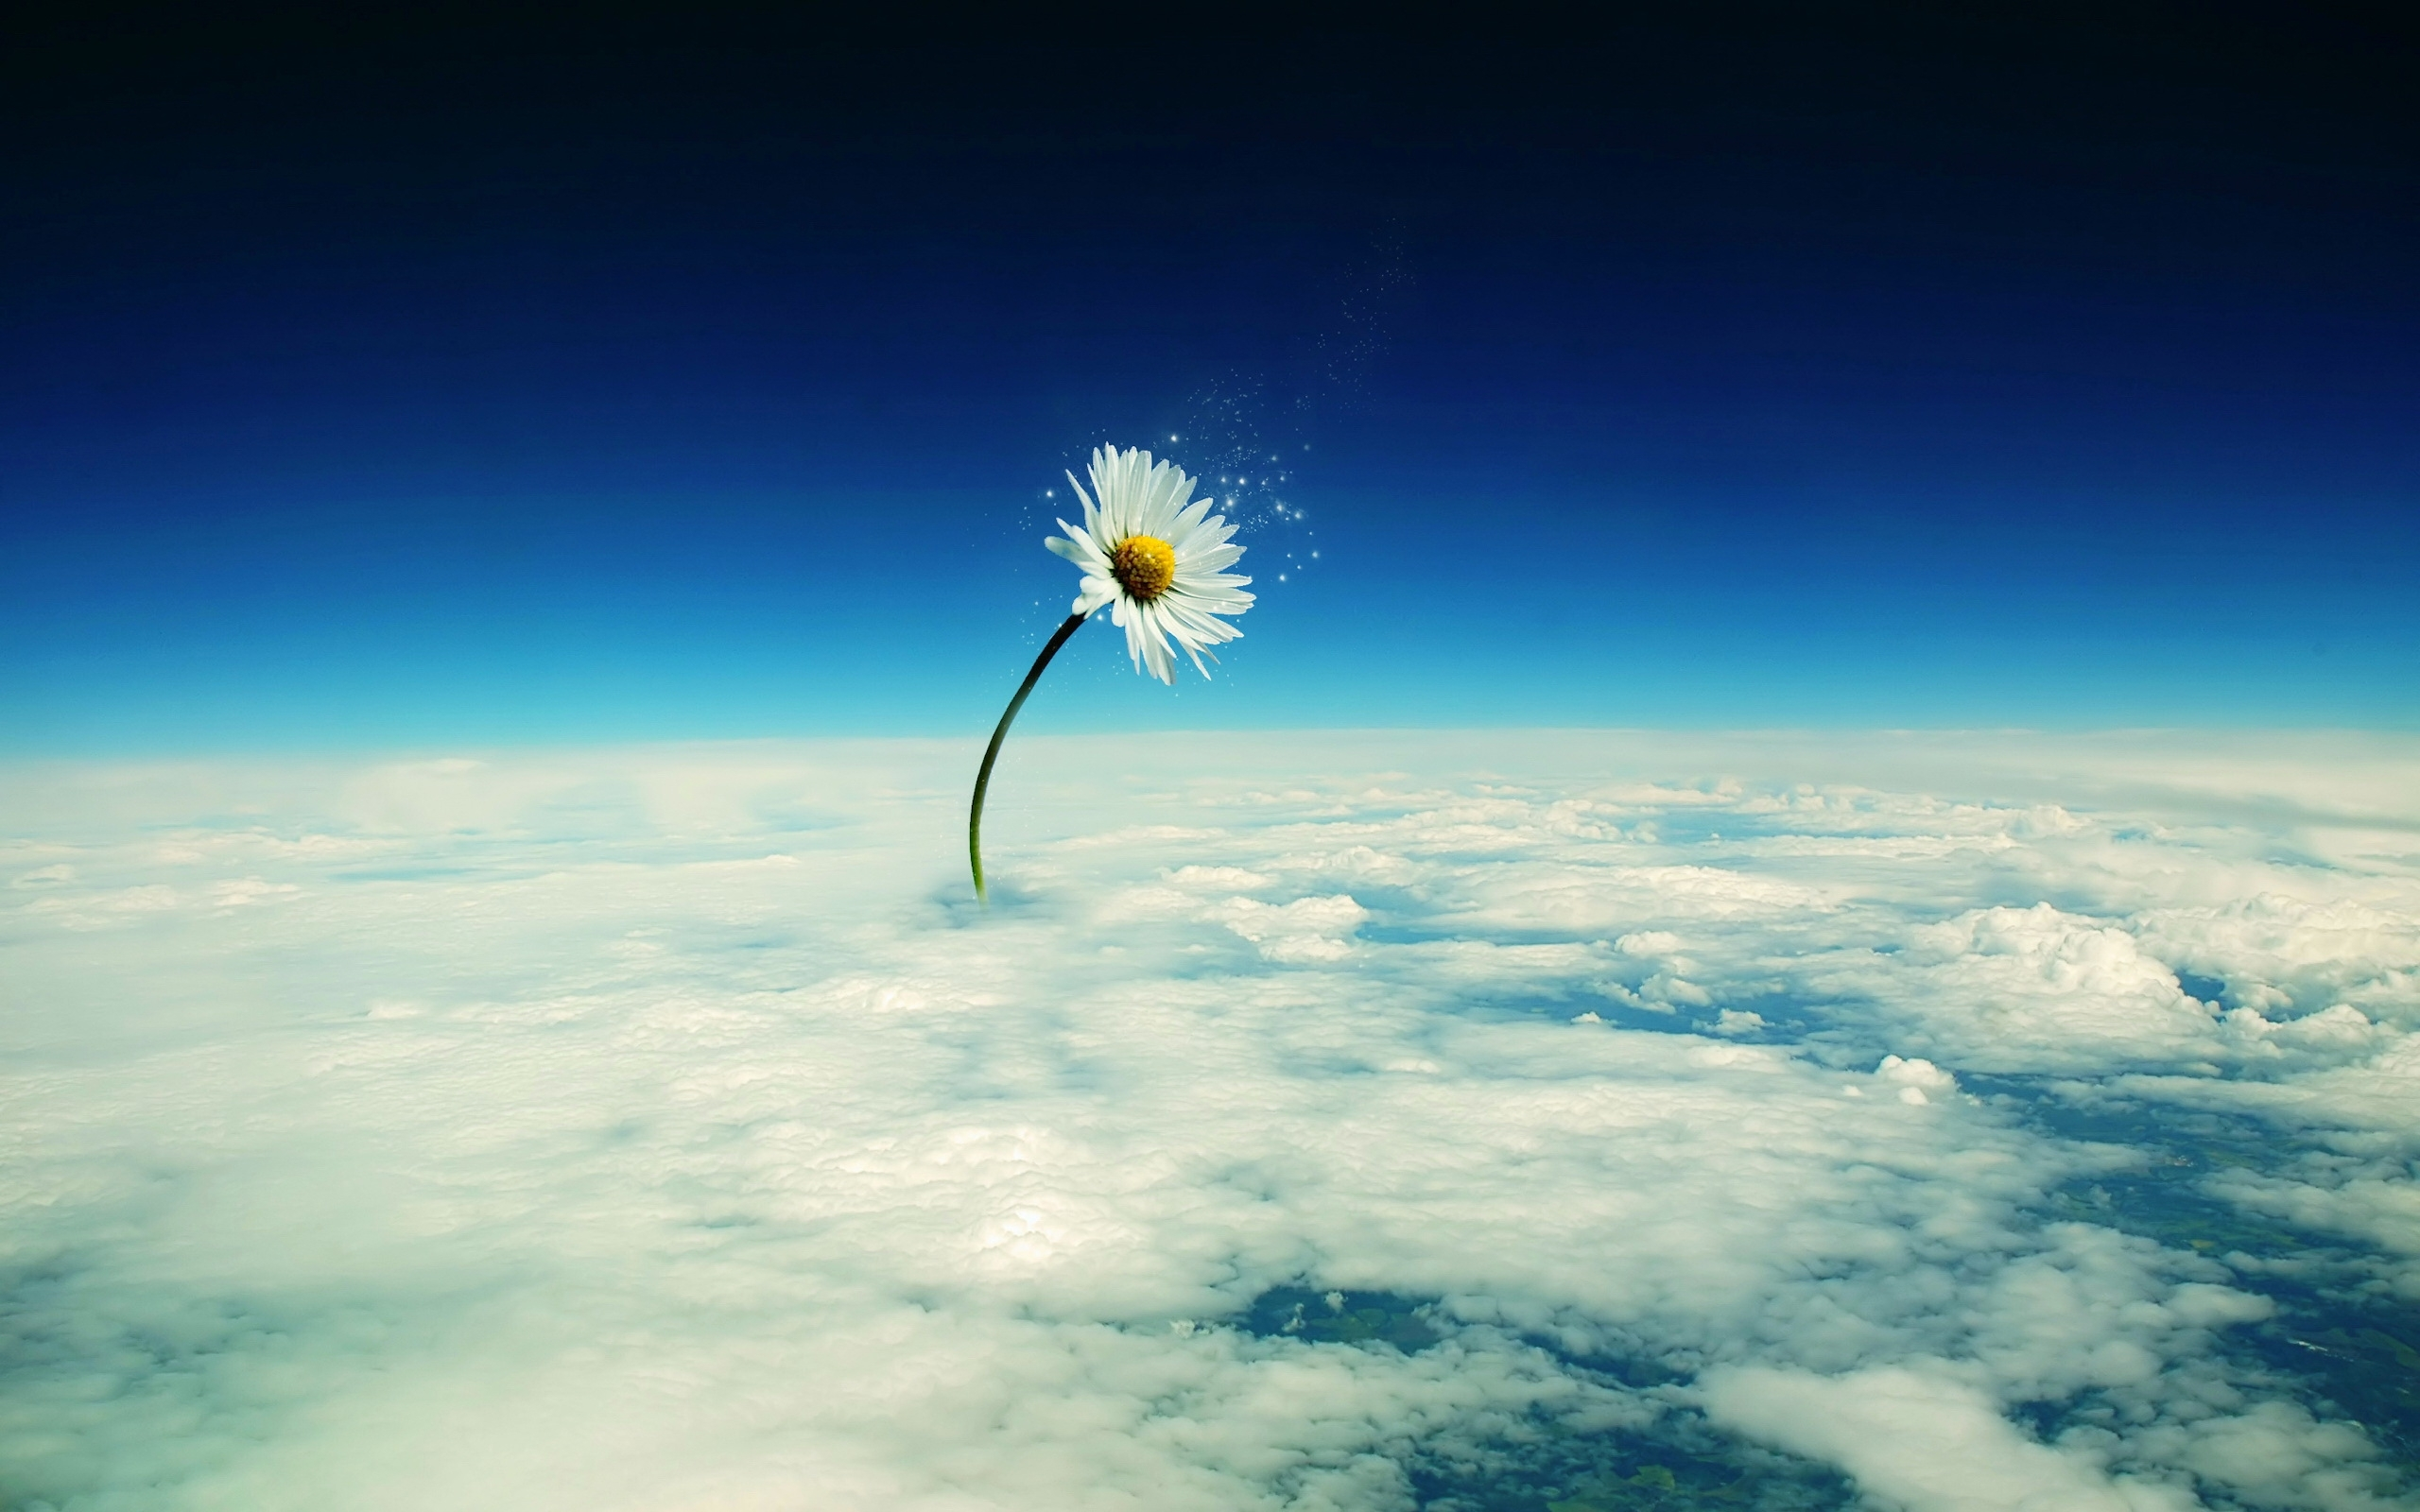 40939 download wallpaper Background, Clouds, Camomile screensavers and pictures for free